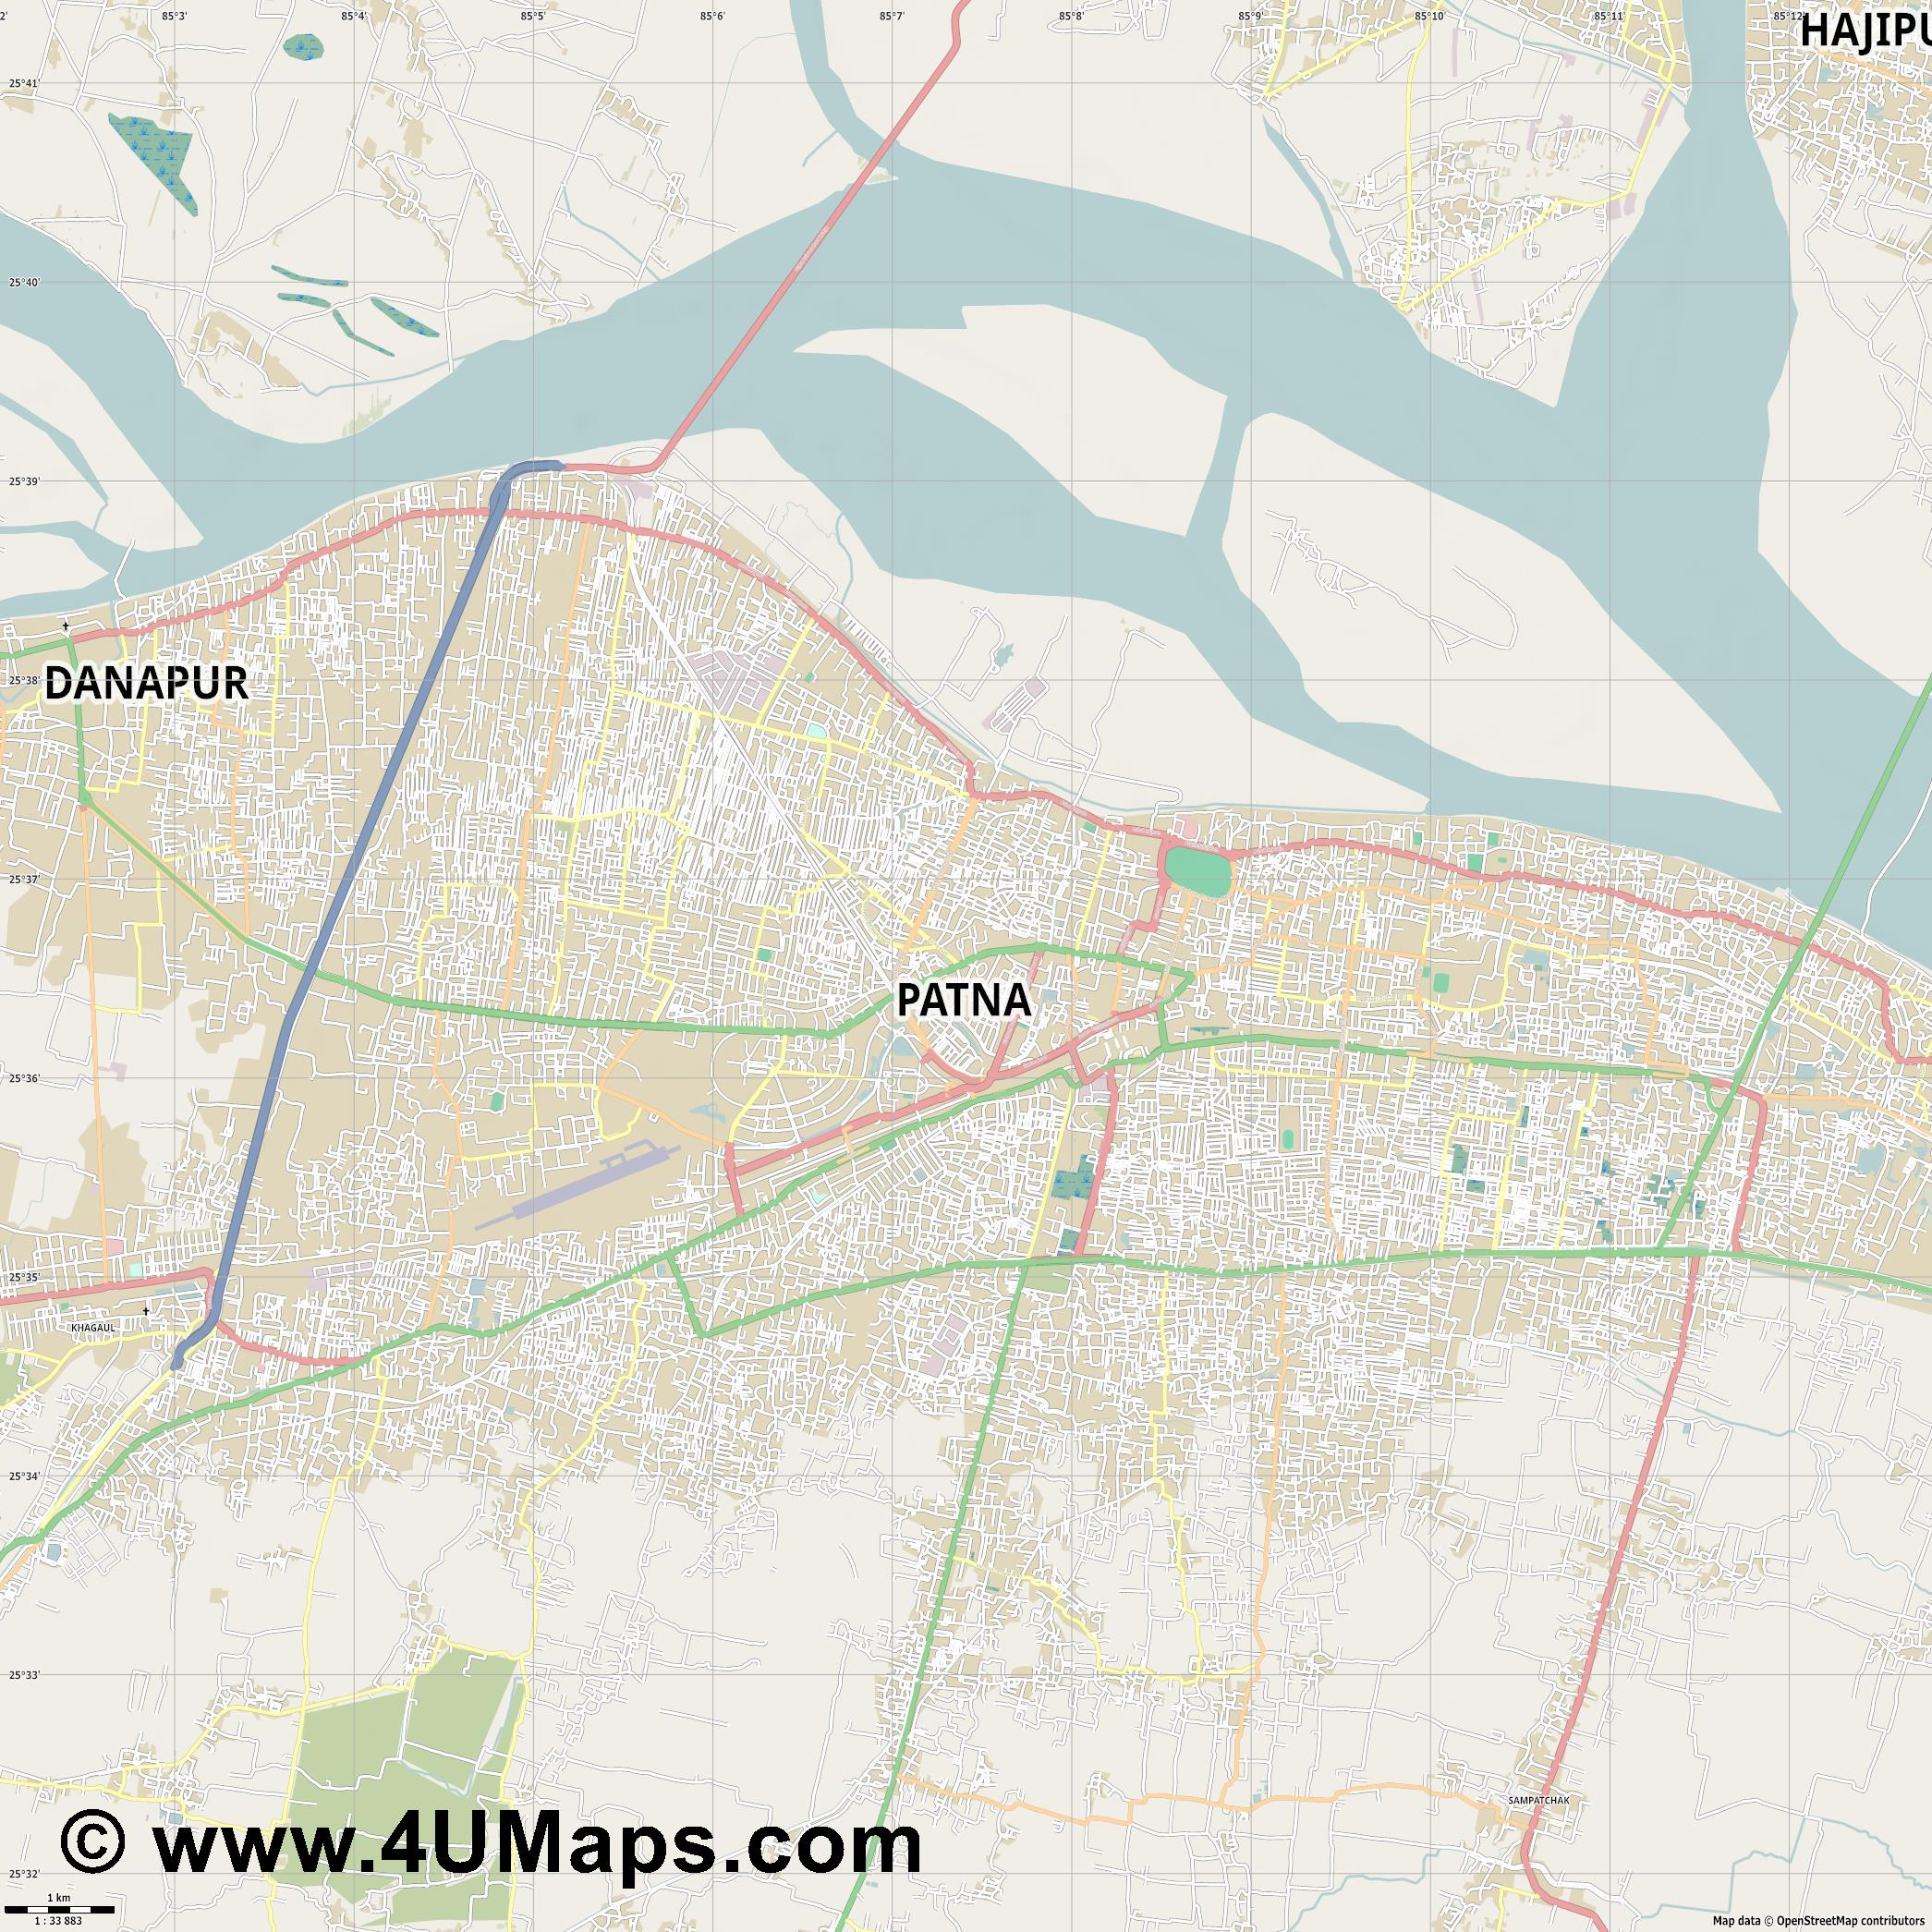 Patna  jpg high detail, large area preview vector city map